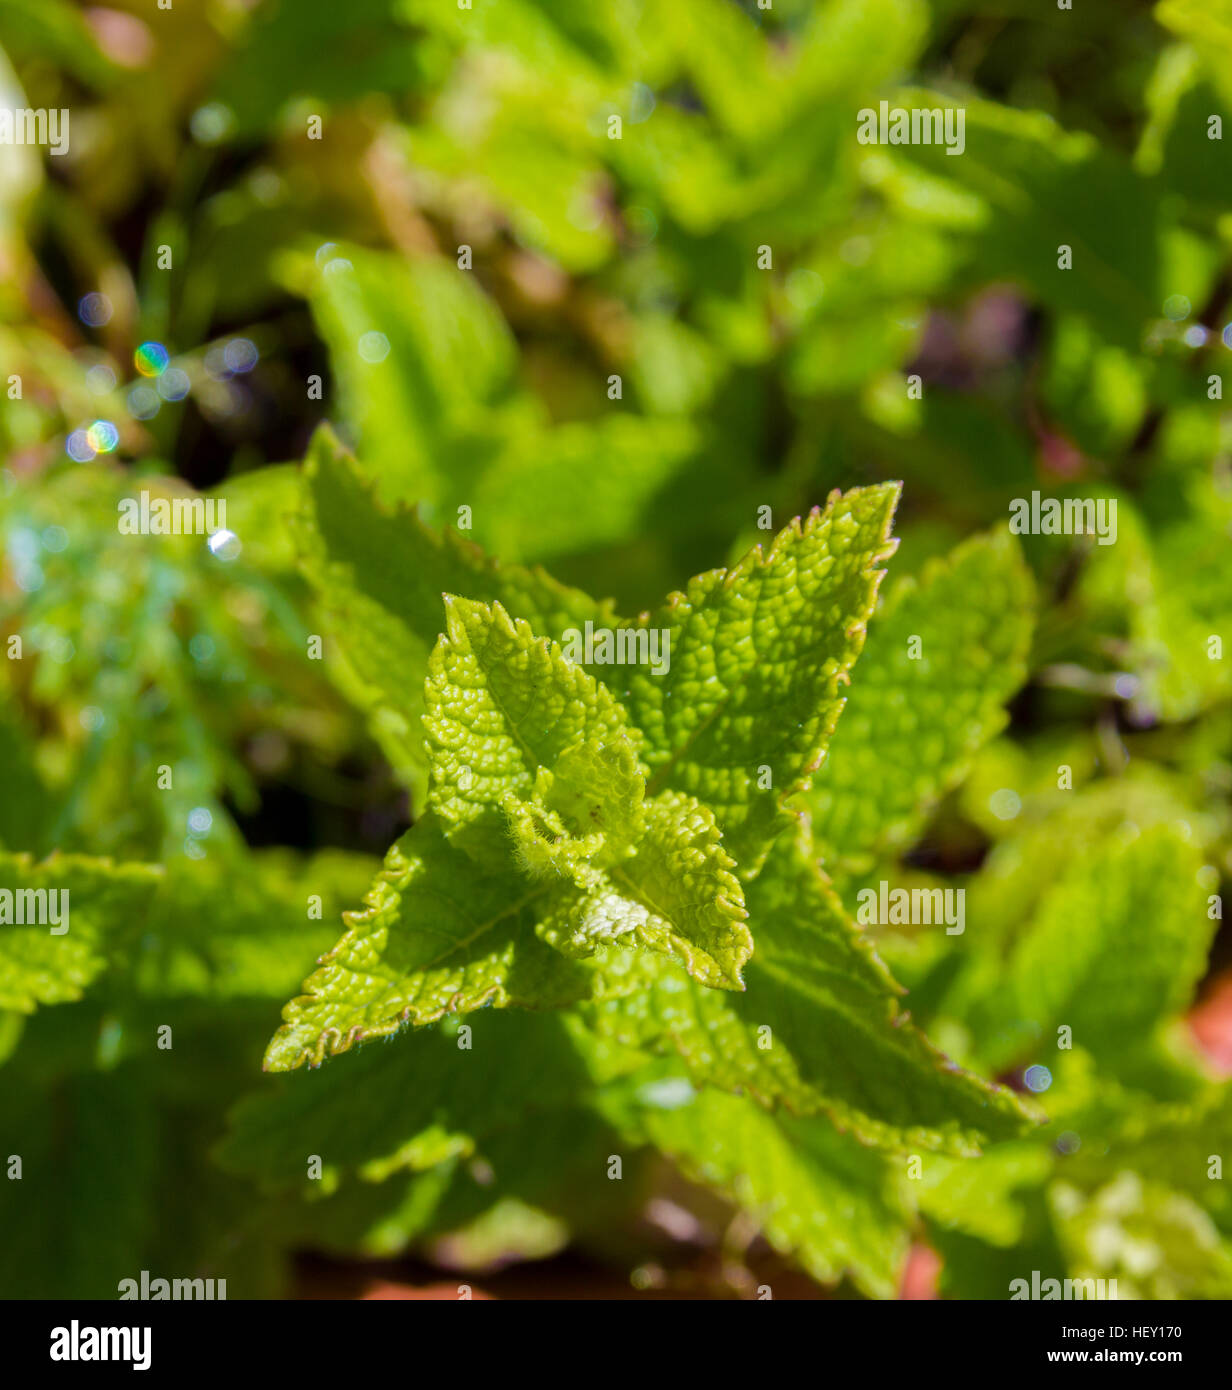 mint plant growing in herb garden - Stock Image